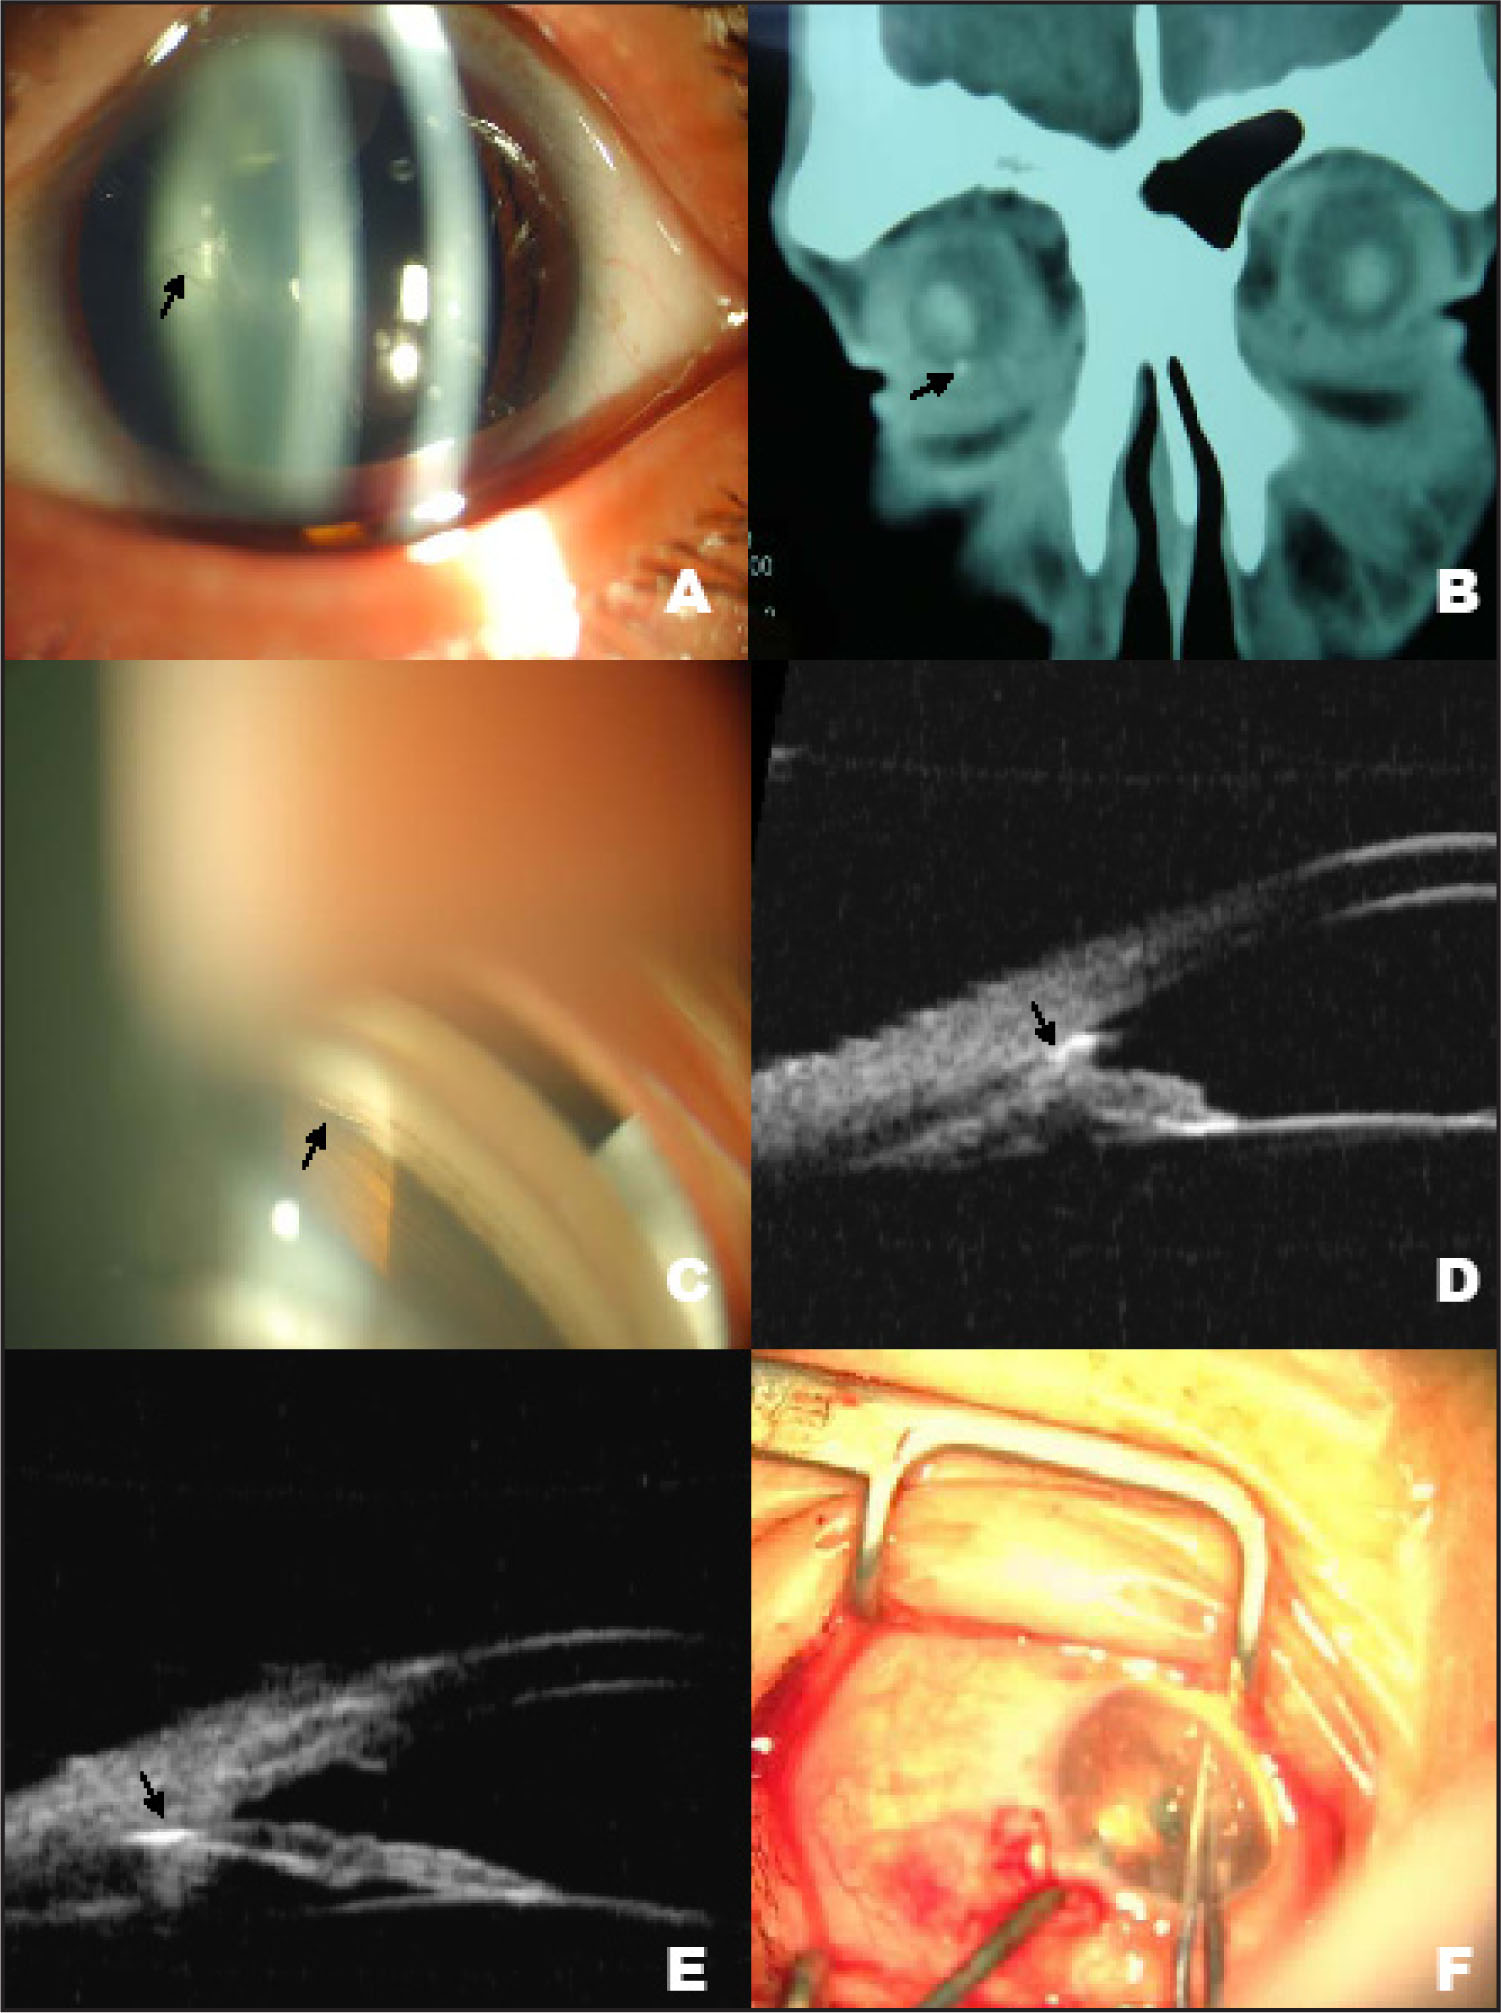 (A) Slitlamp View of the Left Eye Showed a Mild Conjunctival Injection, a 1mm Full-Thickness Self-Healed Corneal Wound and a Small Triangular Rupture in the Anterior Lens Capsule (arrow), Without Evidence of Cataract Formation. (B) A Coronal CT Scan Revealed Small Dense Radio-Opaque Intraocular Foreign Body (arrow) at 6:30 Position. (C) Gonioscopic View of the Left Eye Showed a Silvery Metallic Fragment (arrow) in the Inferior Angle at 6:30 Position. (D) Preoperative UBM View of the Left Eye Showed a Foreign Body (arrow) in the Inferior Angle at 6:30 Position. (E) Five Days After the First Surgery, UBM of the Left Eye Showed Peripheral Anterior Synechiae and the Foreign Body (arrow) Embedded in Angle Structures. (F) Intraoperative Photograph Showed the Removal of the Foreign Body by a Forceps Under Endoscopic Guidance.